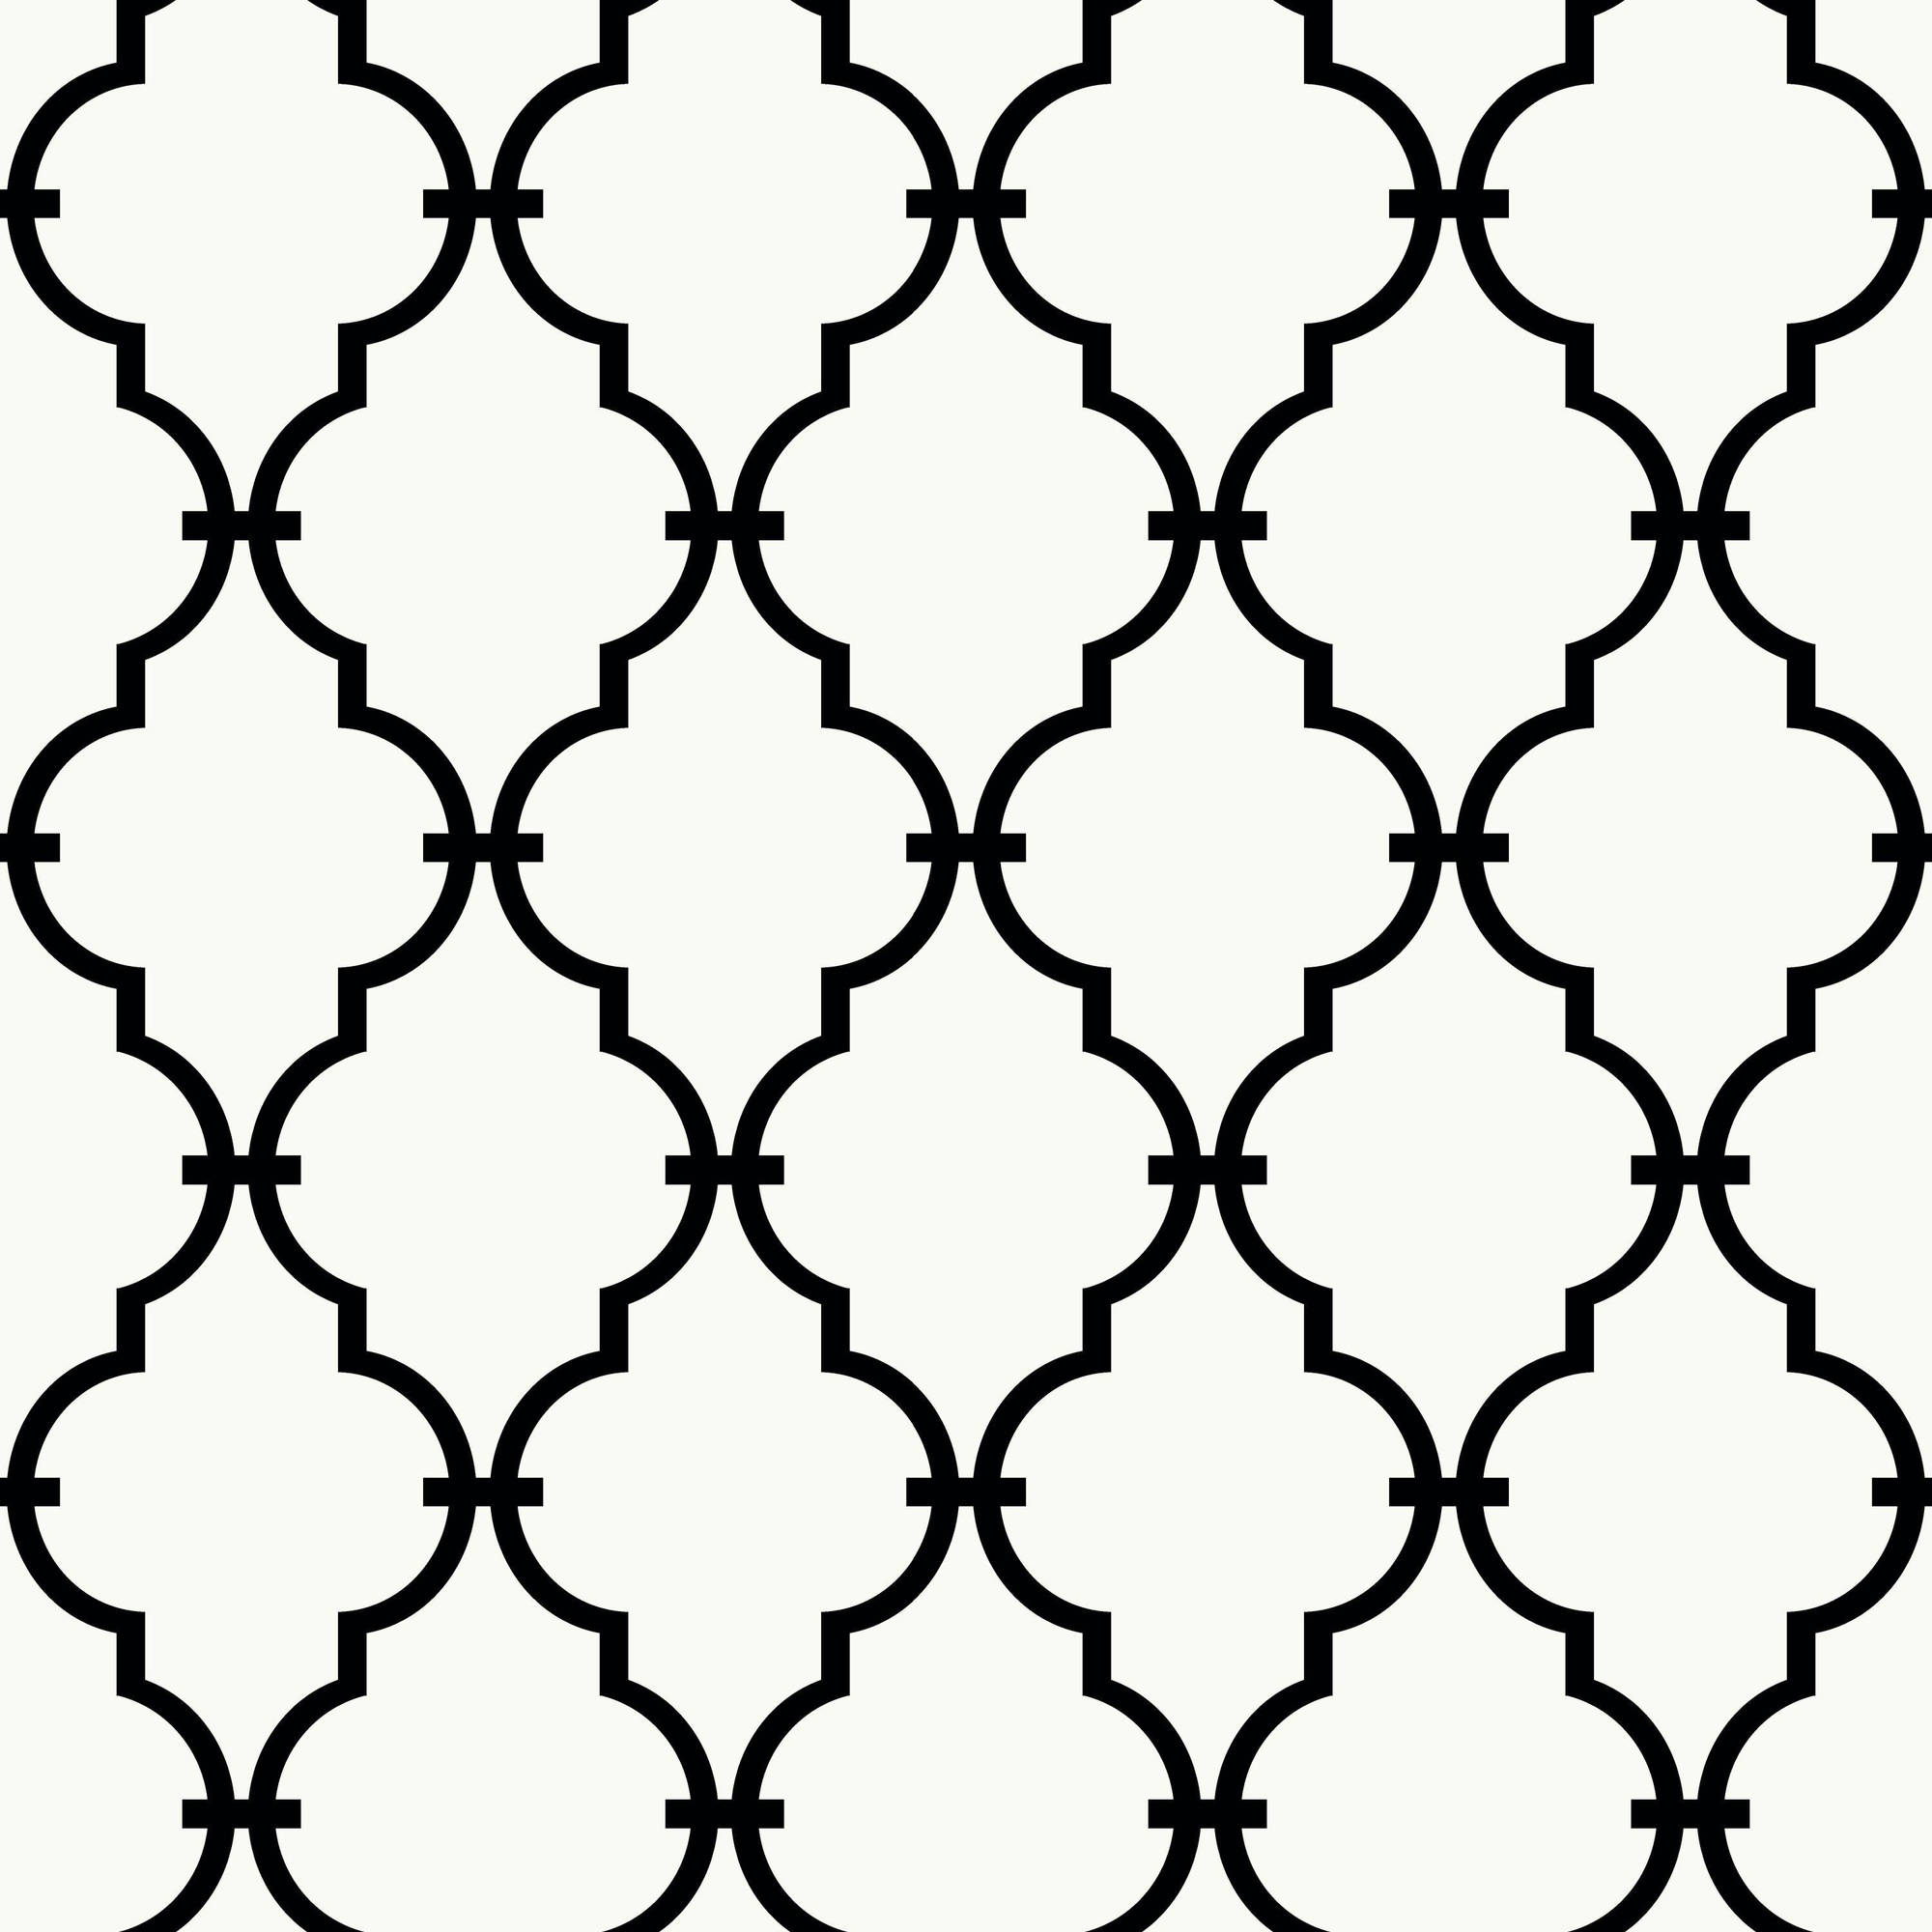 RoomMates Modern Trellis Peel and Stick Wall Décor Wallpaper